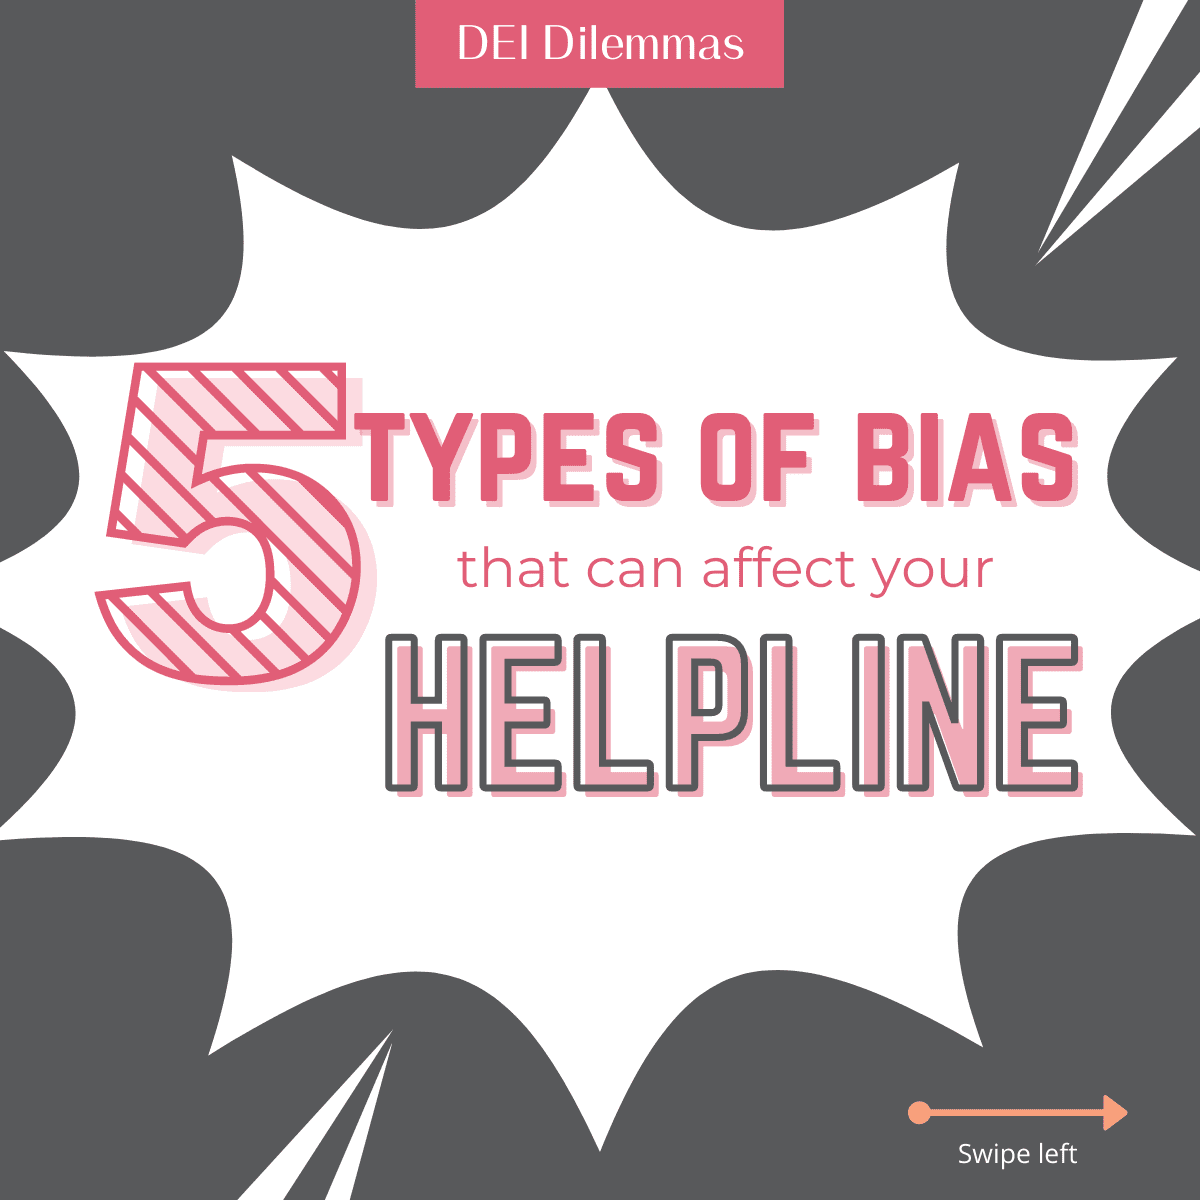 Did you know that there are 5 types of unconscious bias that can affect your hotline?